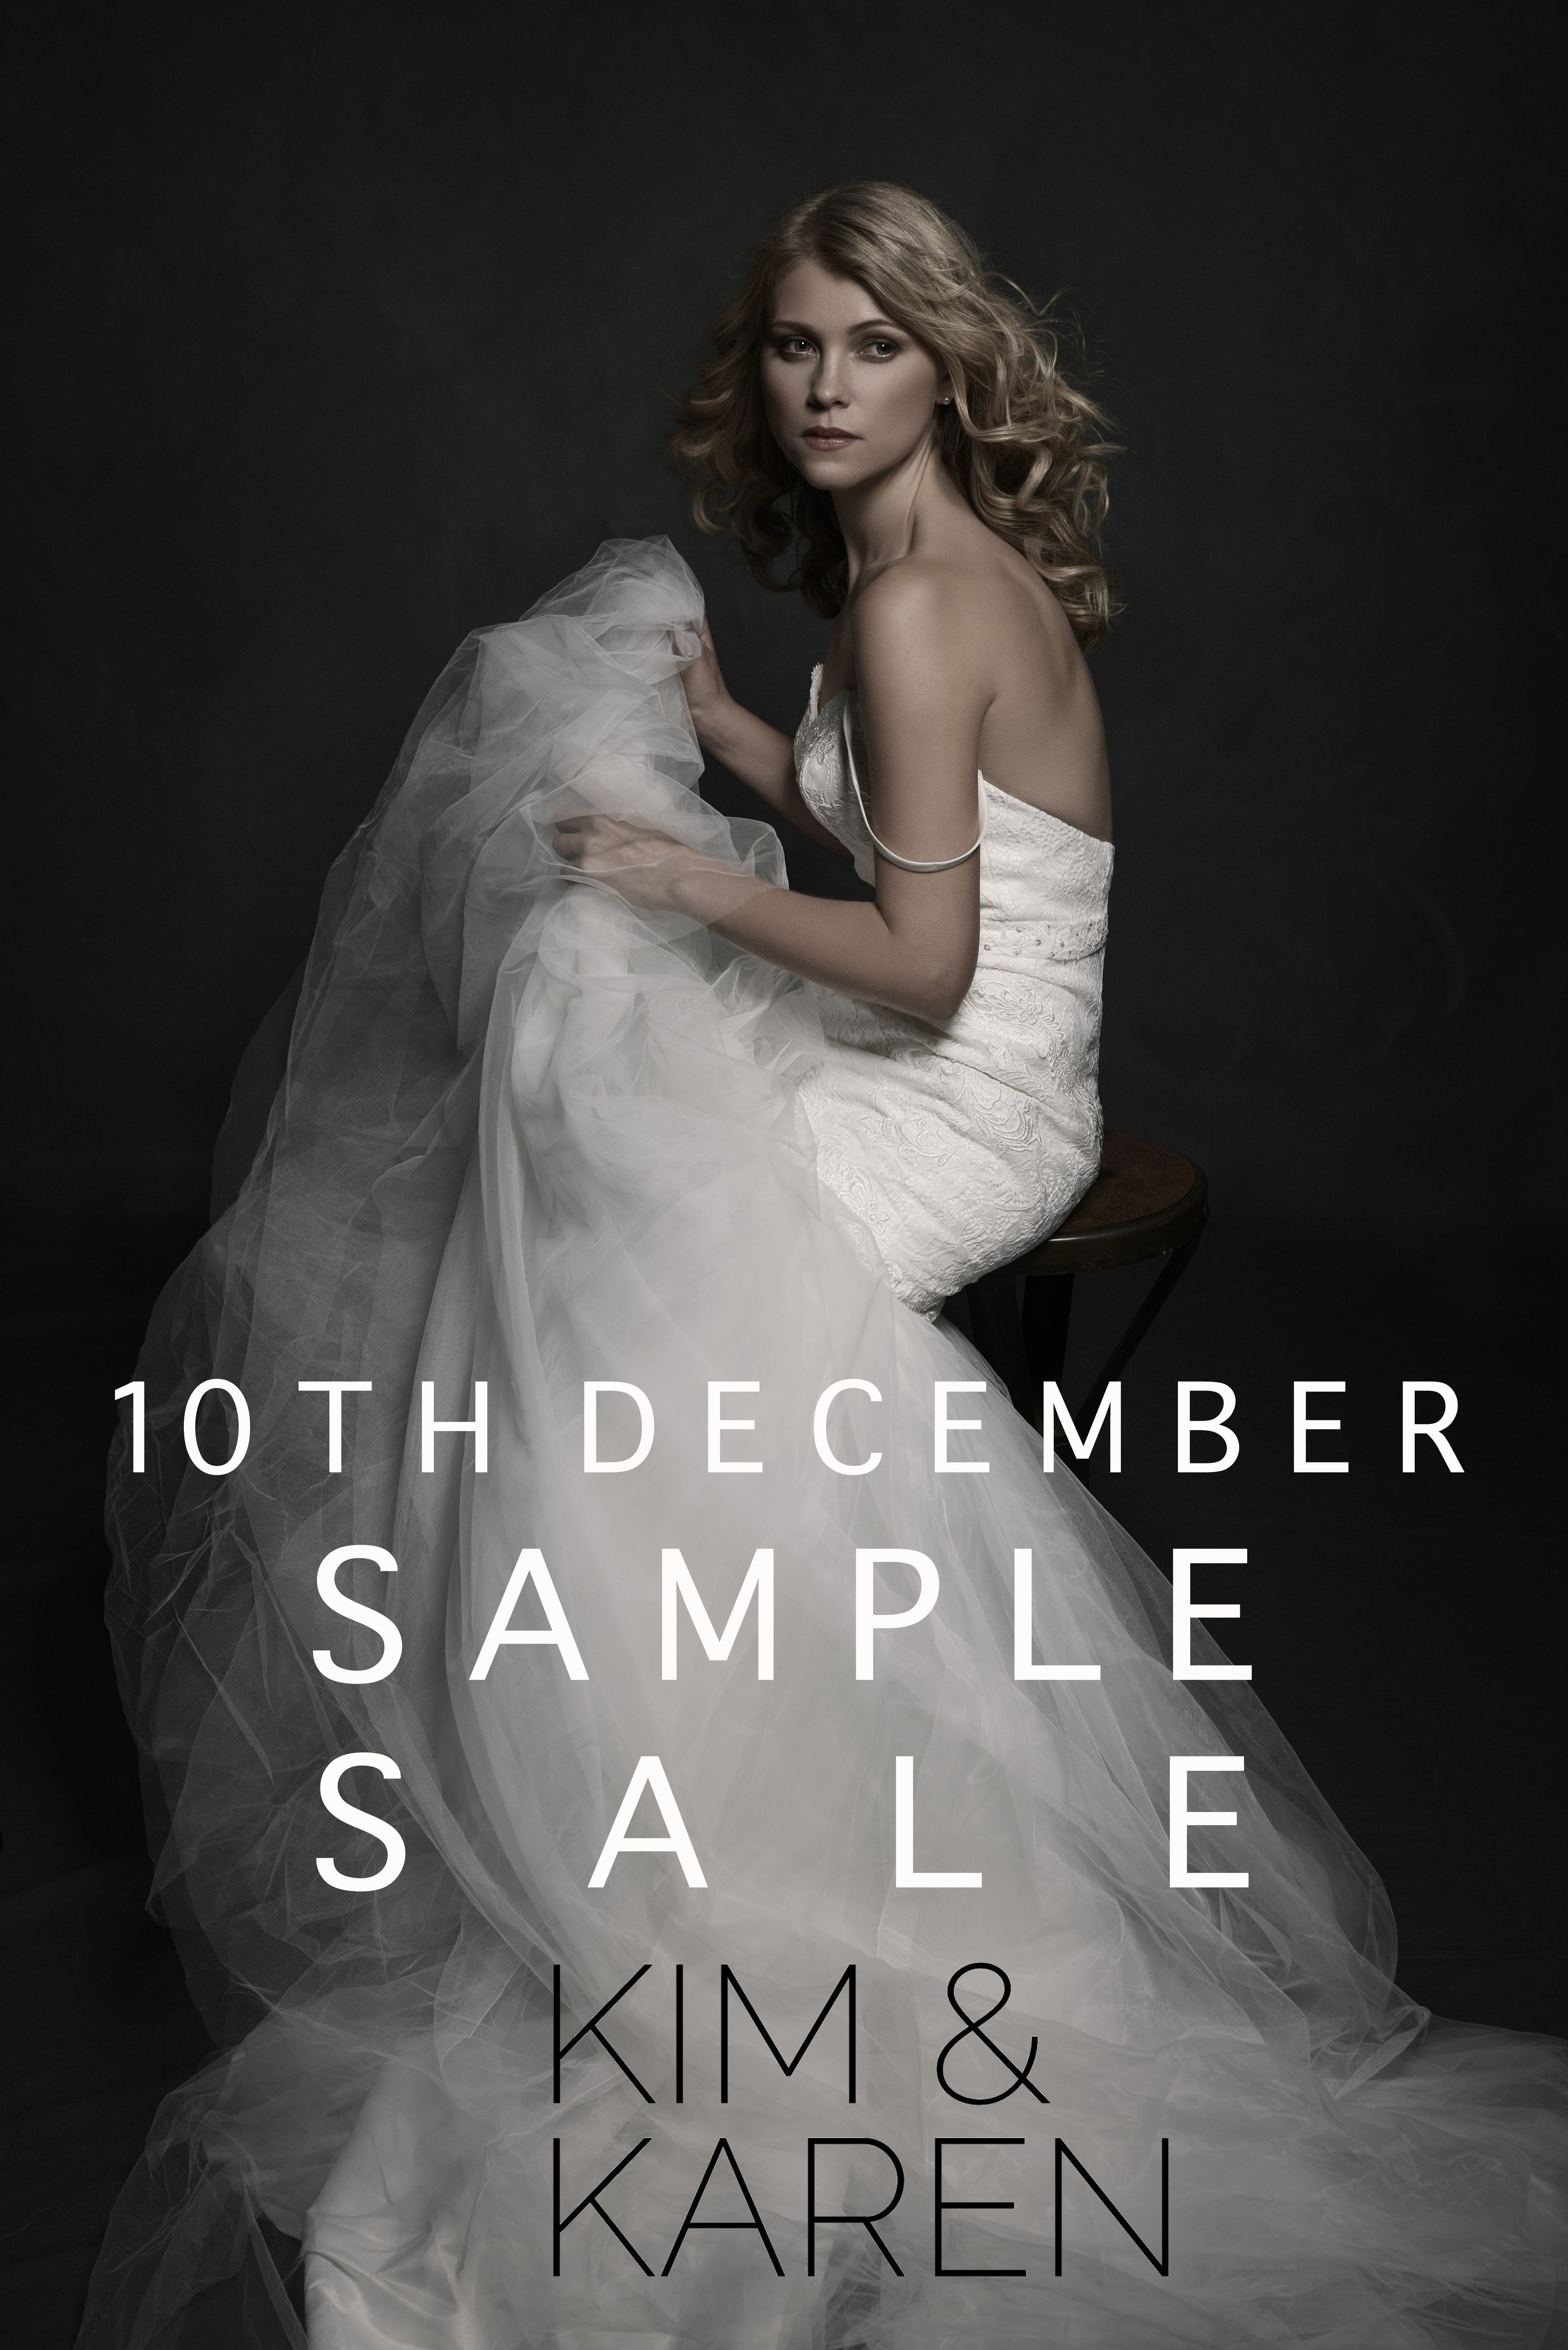 Beautiful dresses at affordable prices - SAMPLE SALE!  10th December